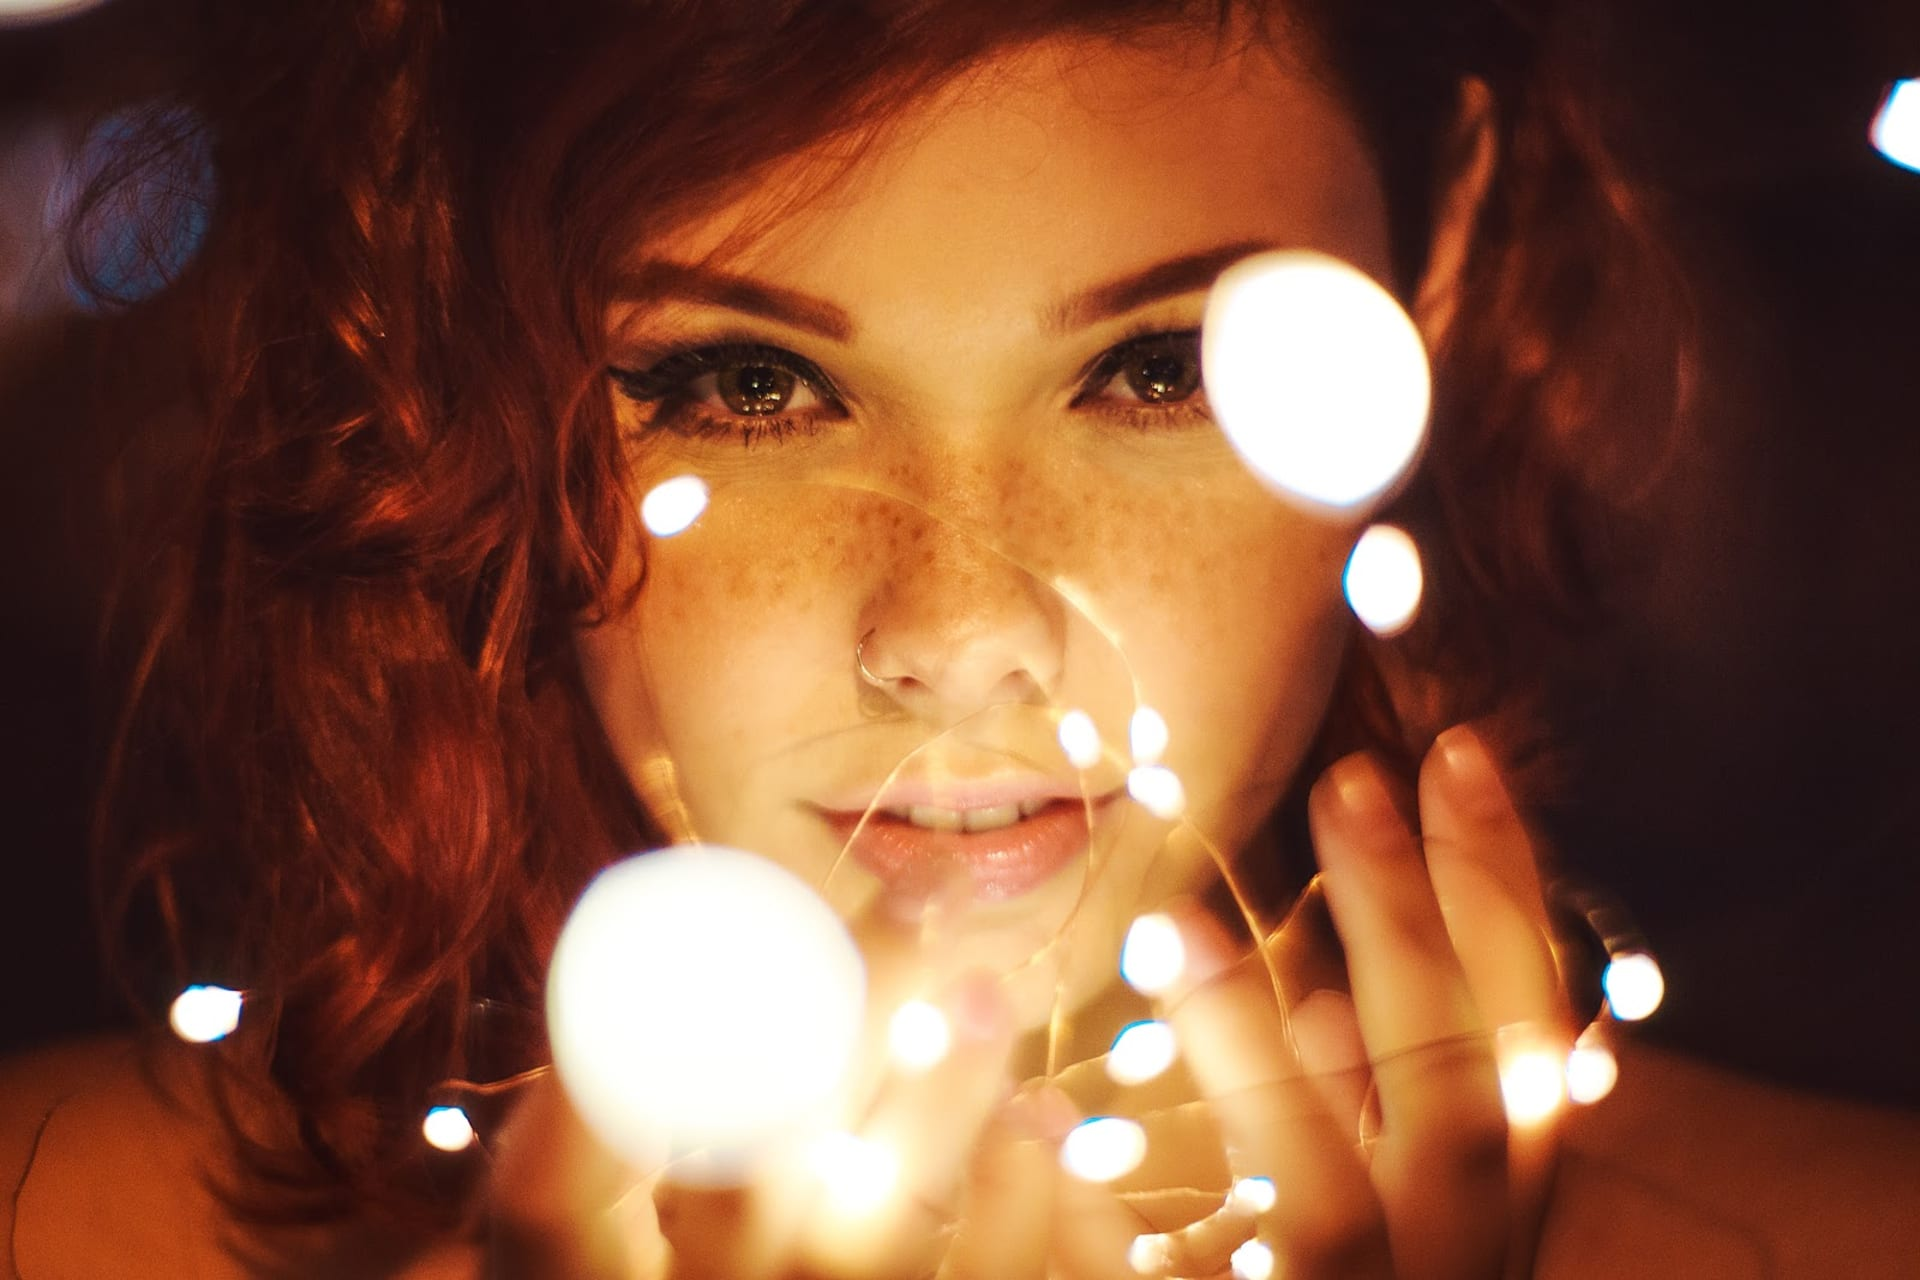 A young woman gazes mysteriously at us through a series of lights held in her fingers